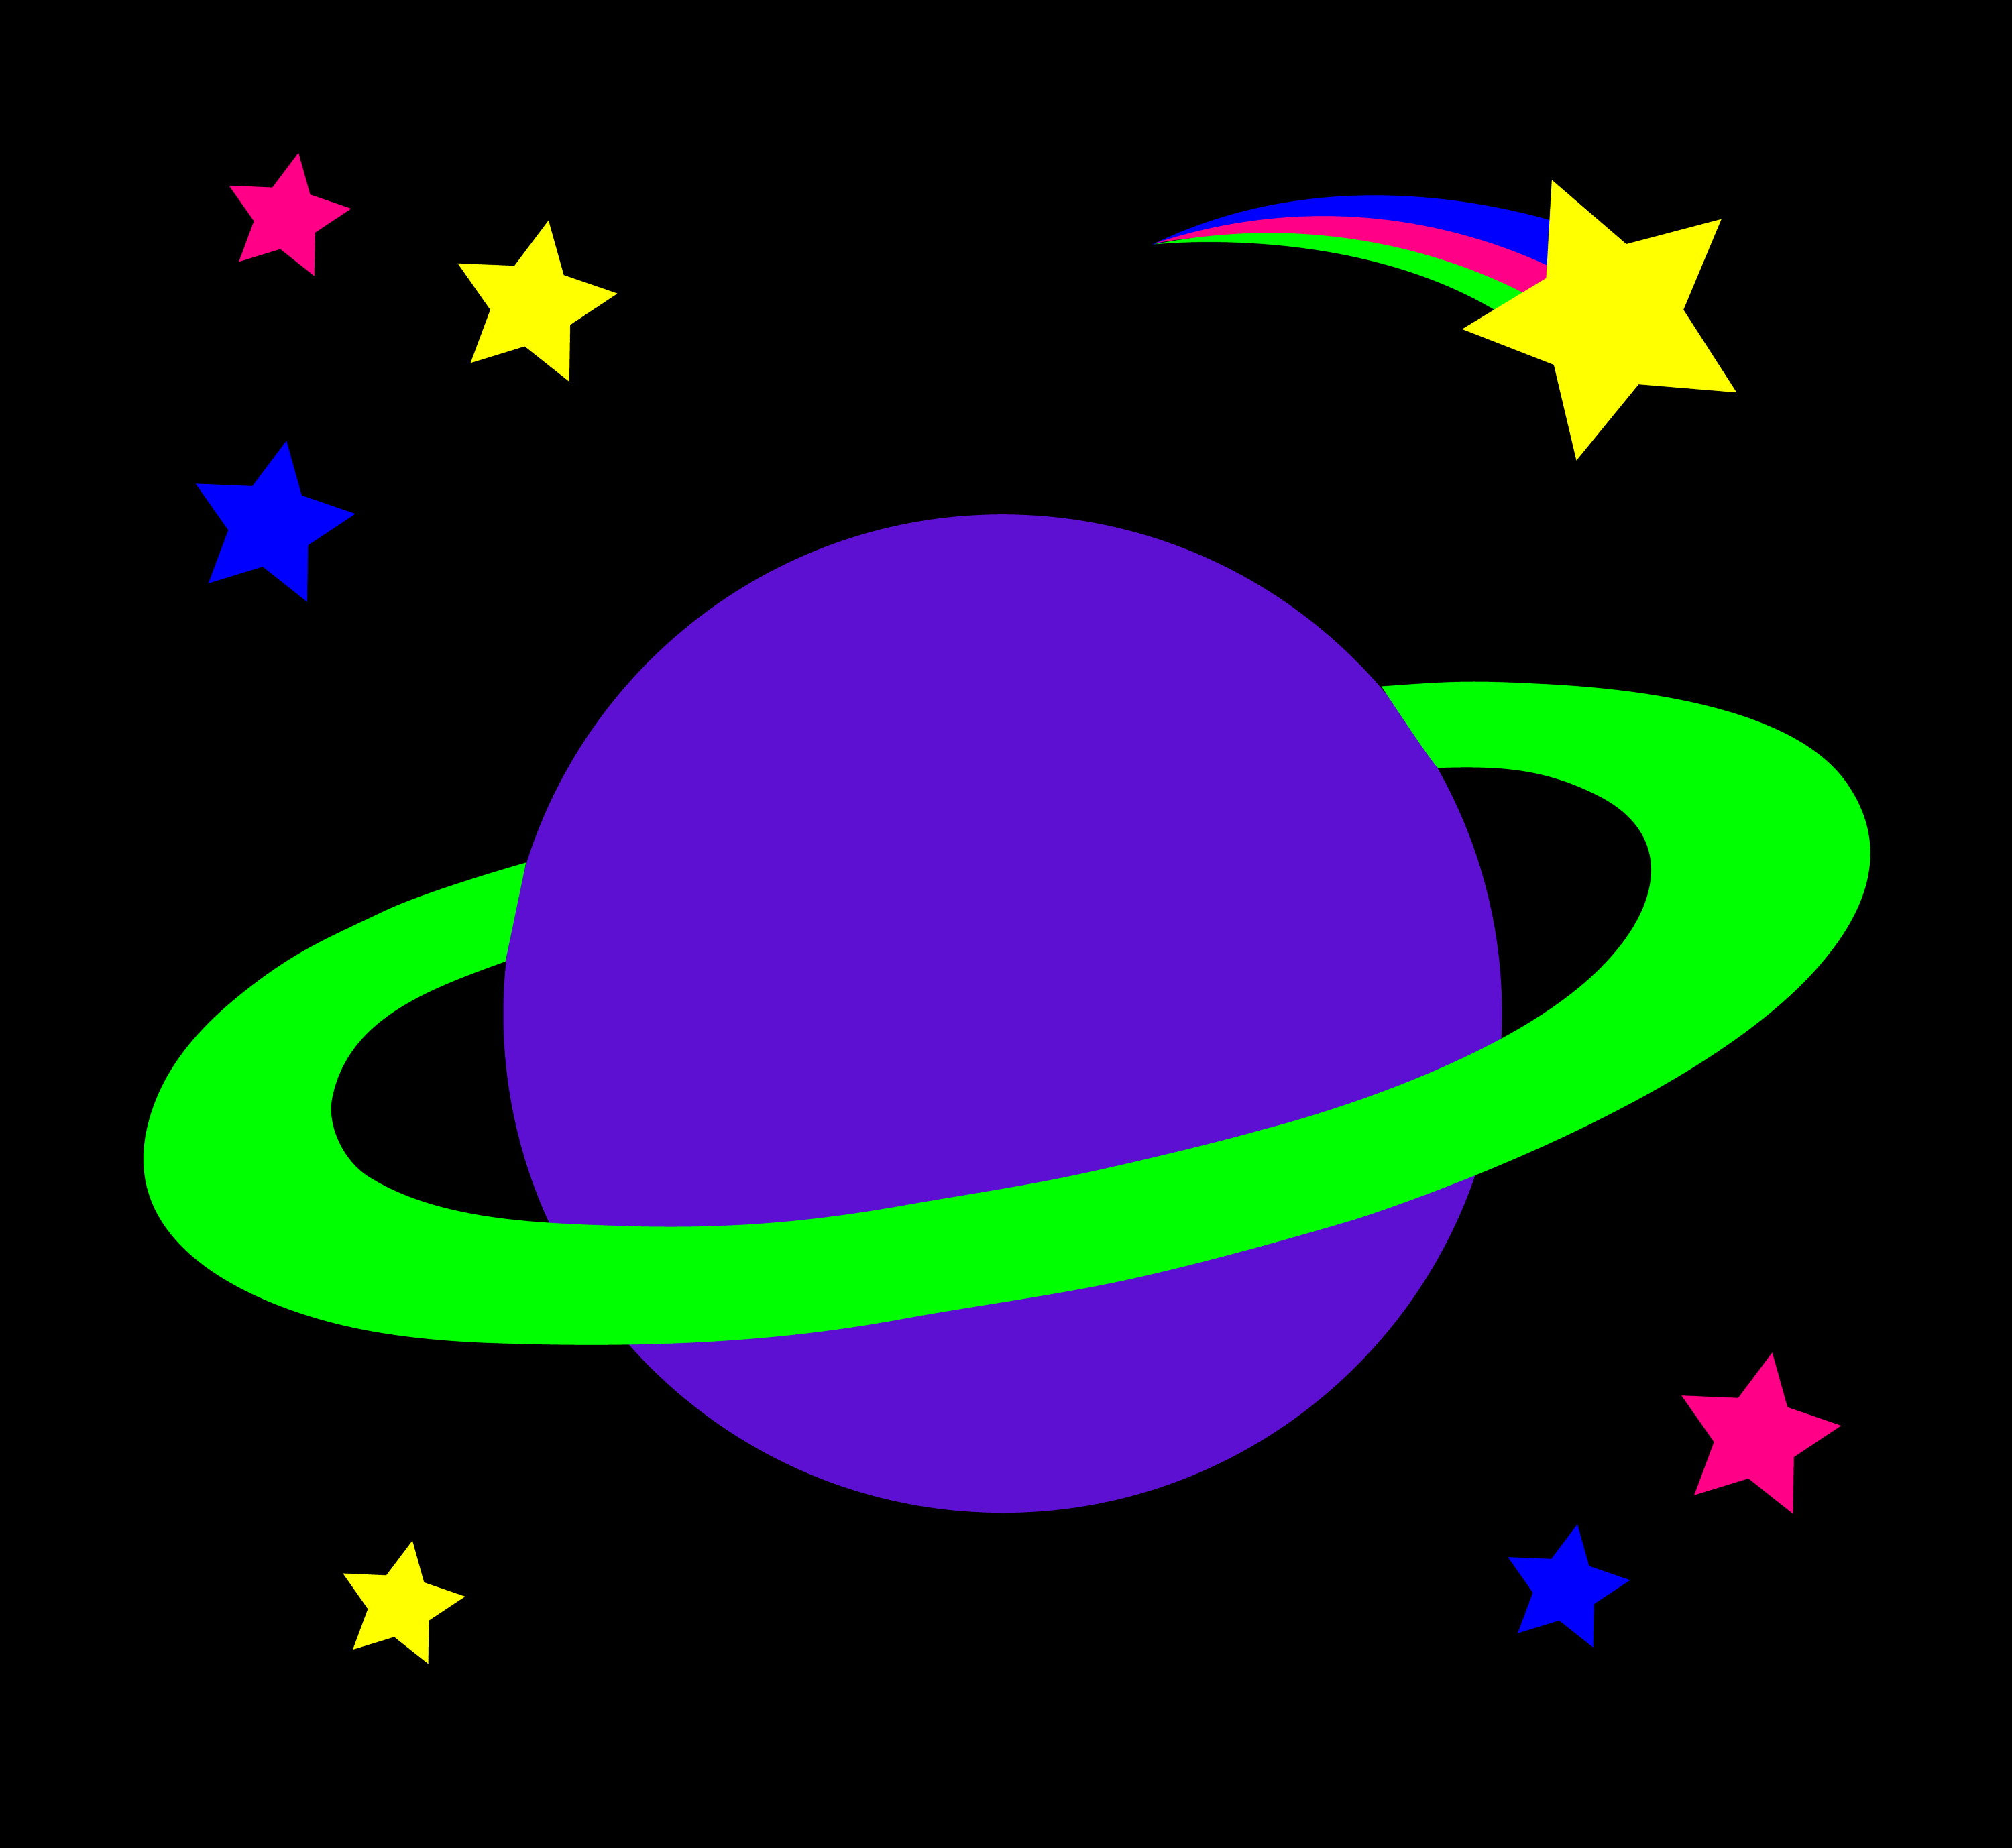 Ringed Planet With Stars - Free Clip Art